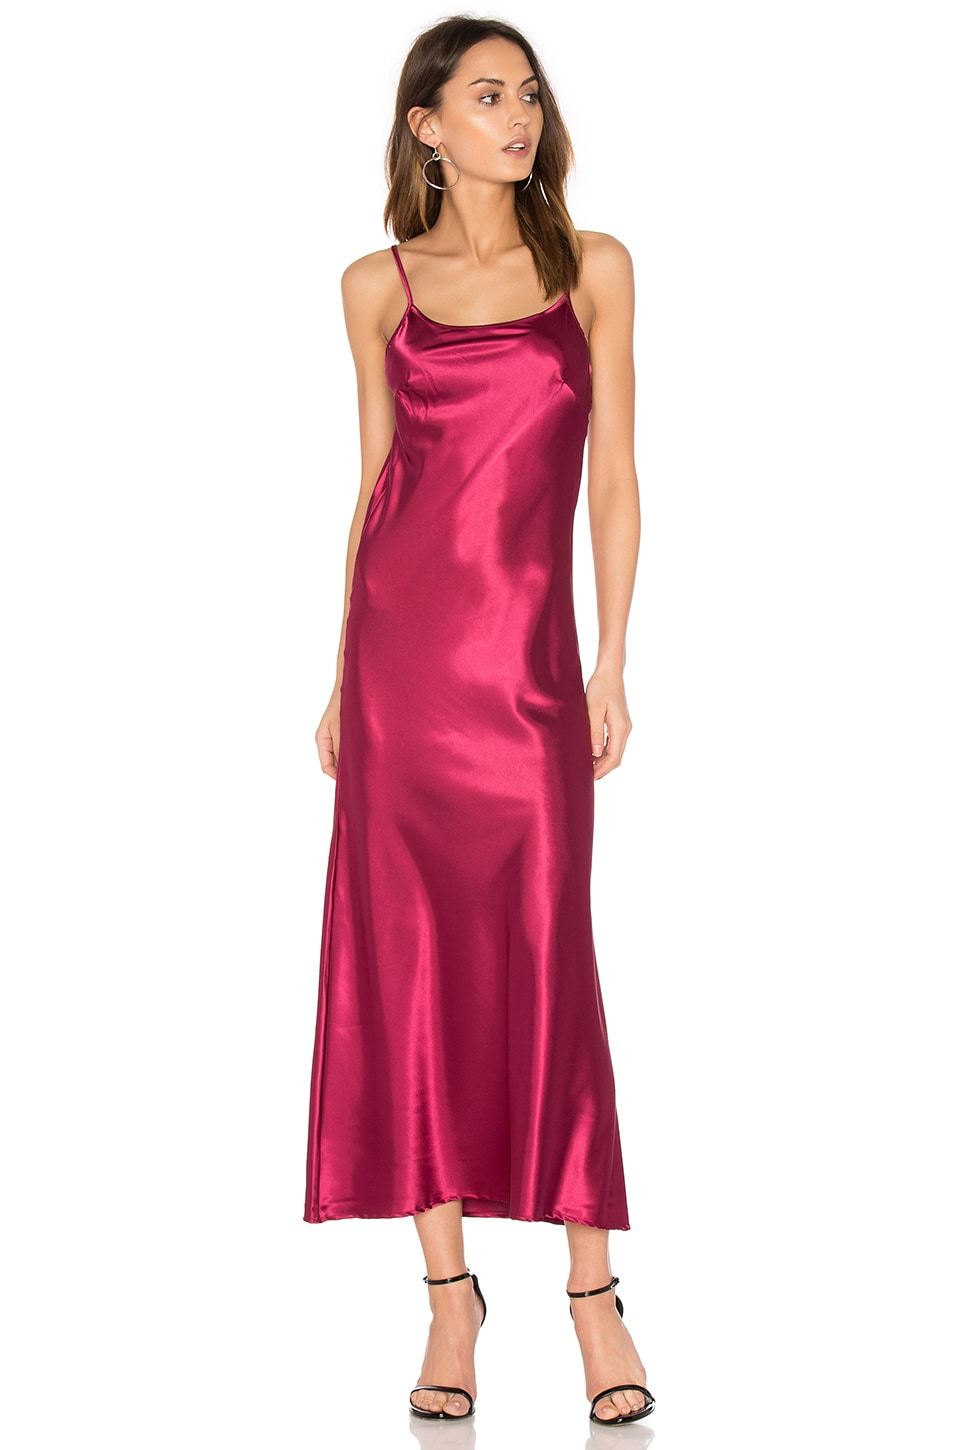 C&C California Erin Maxi Dress in Red Velvet